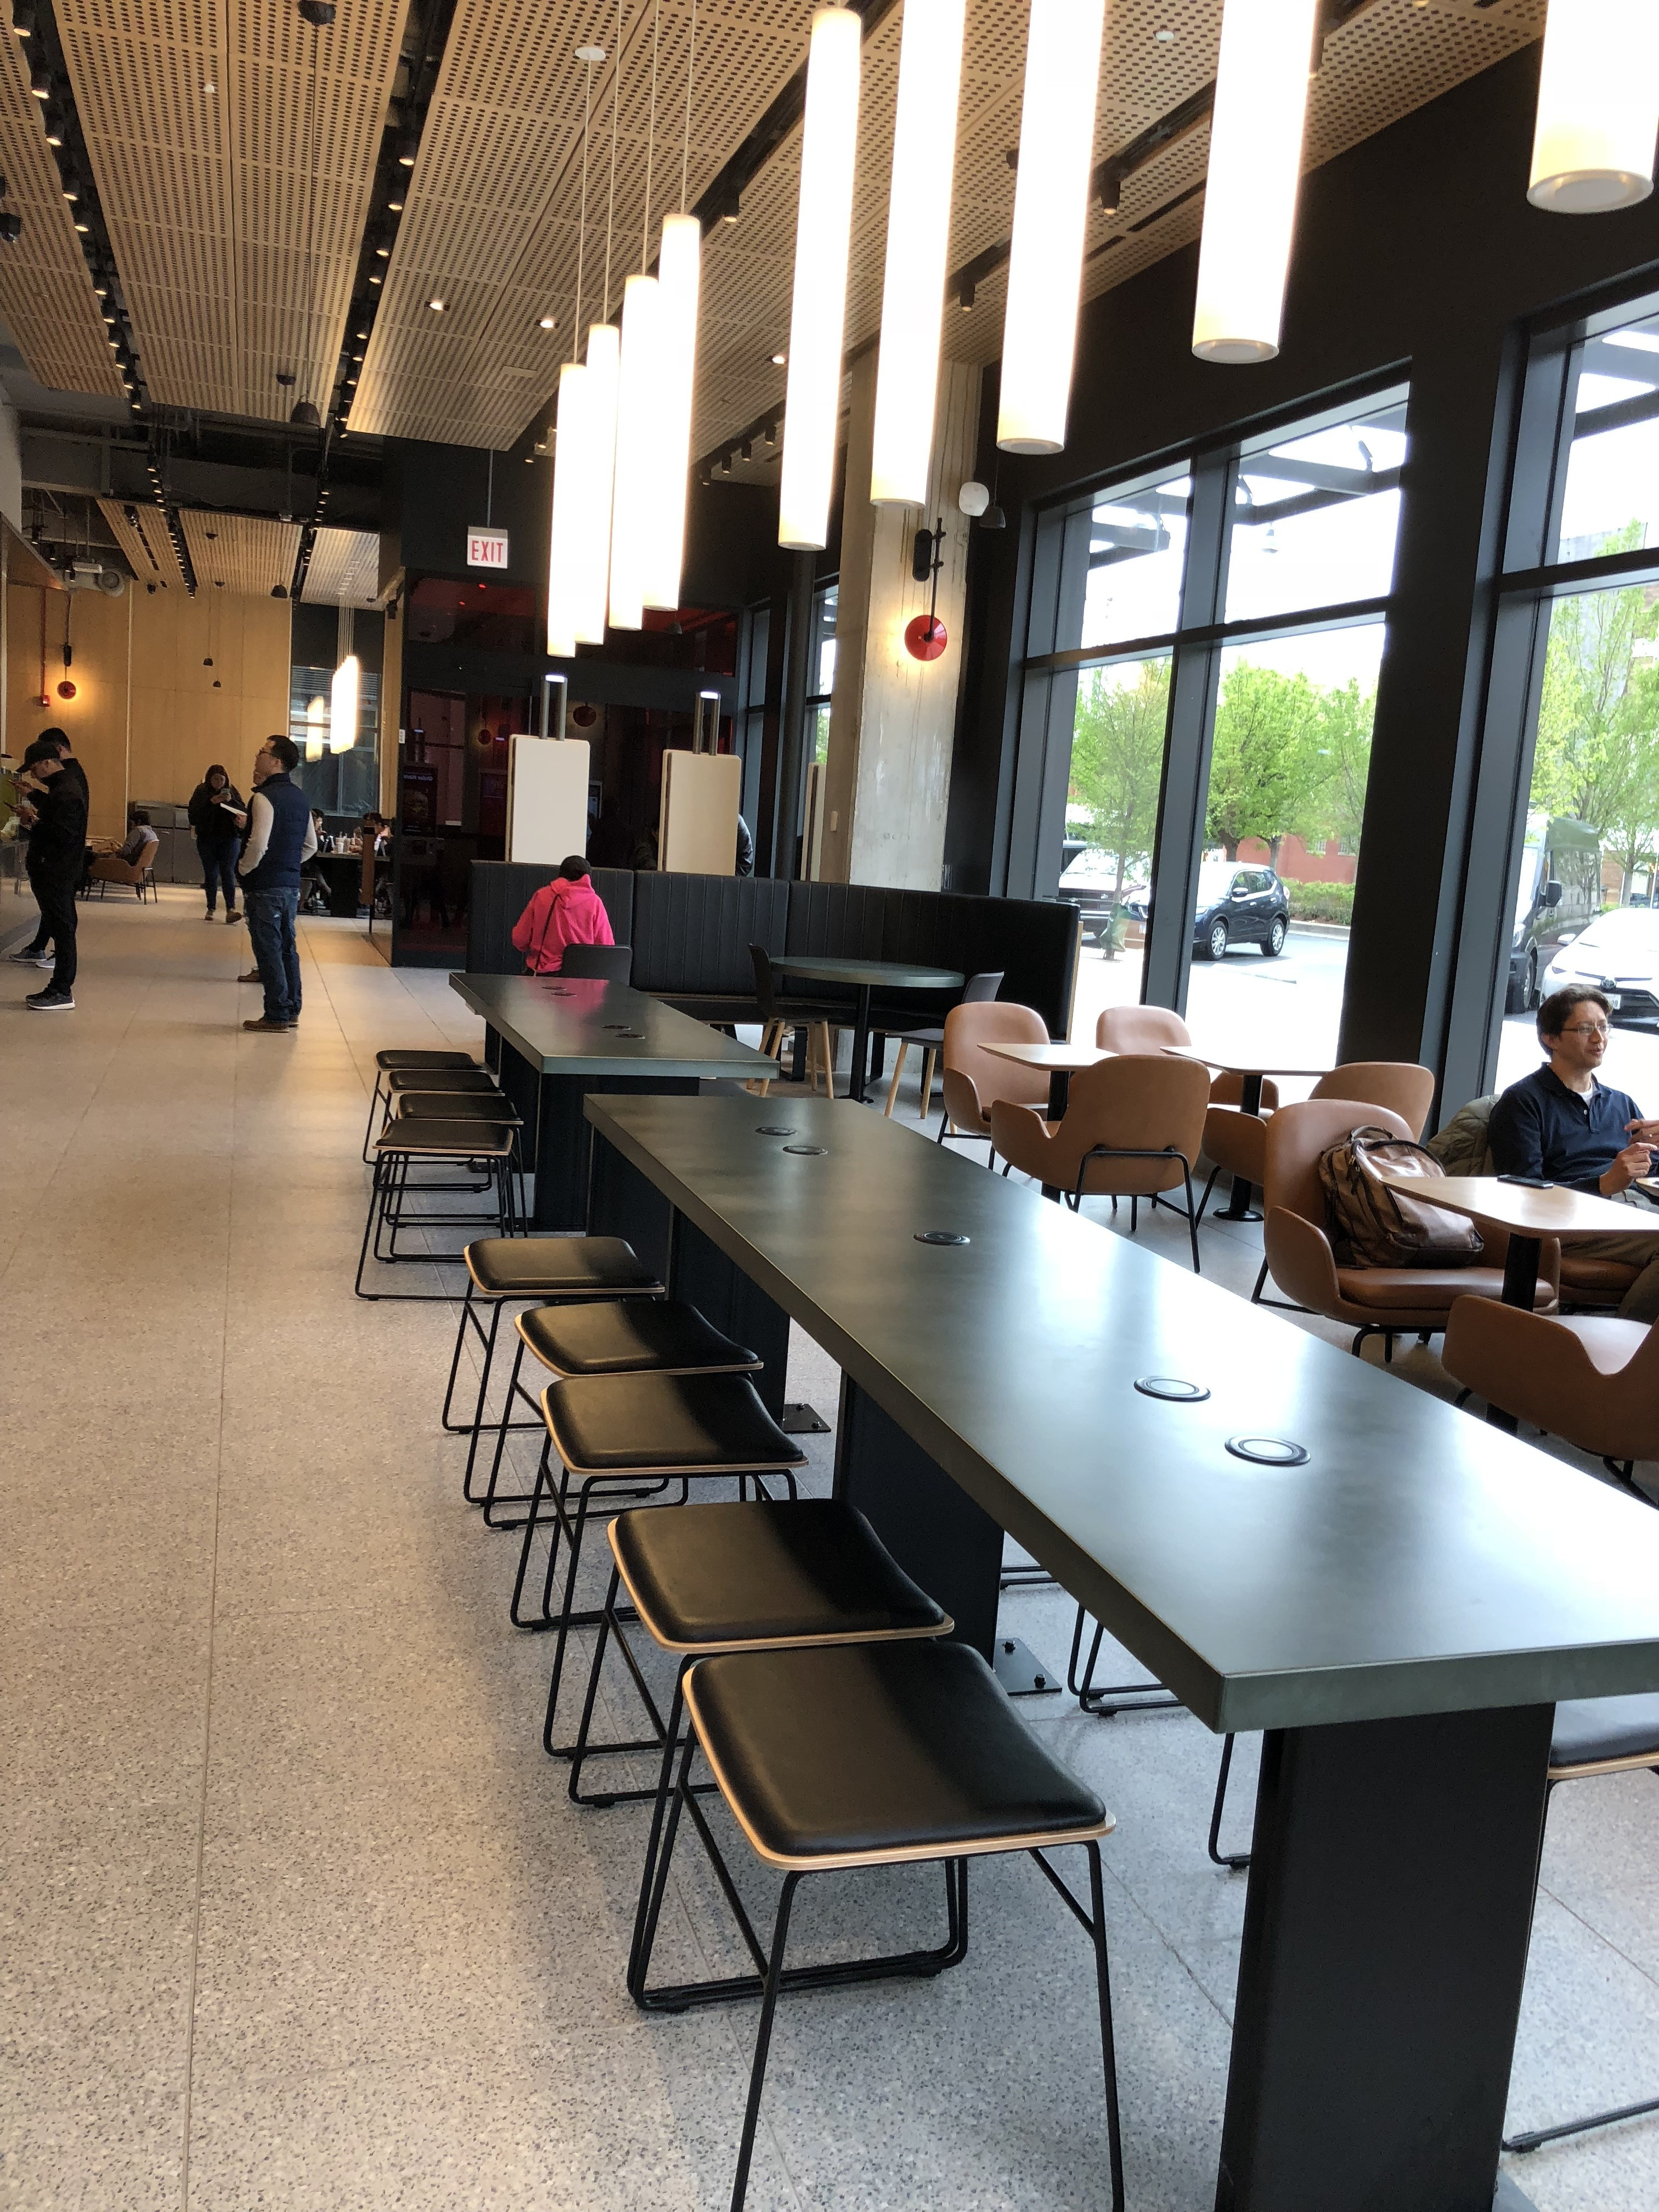 Will The New Mcdonald S Of The Future On Restaurant Row